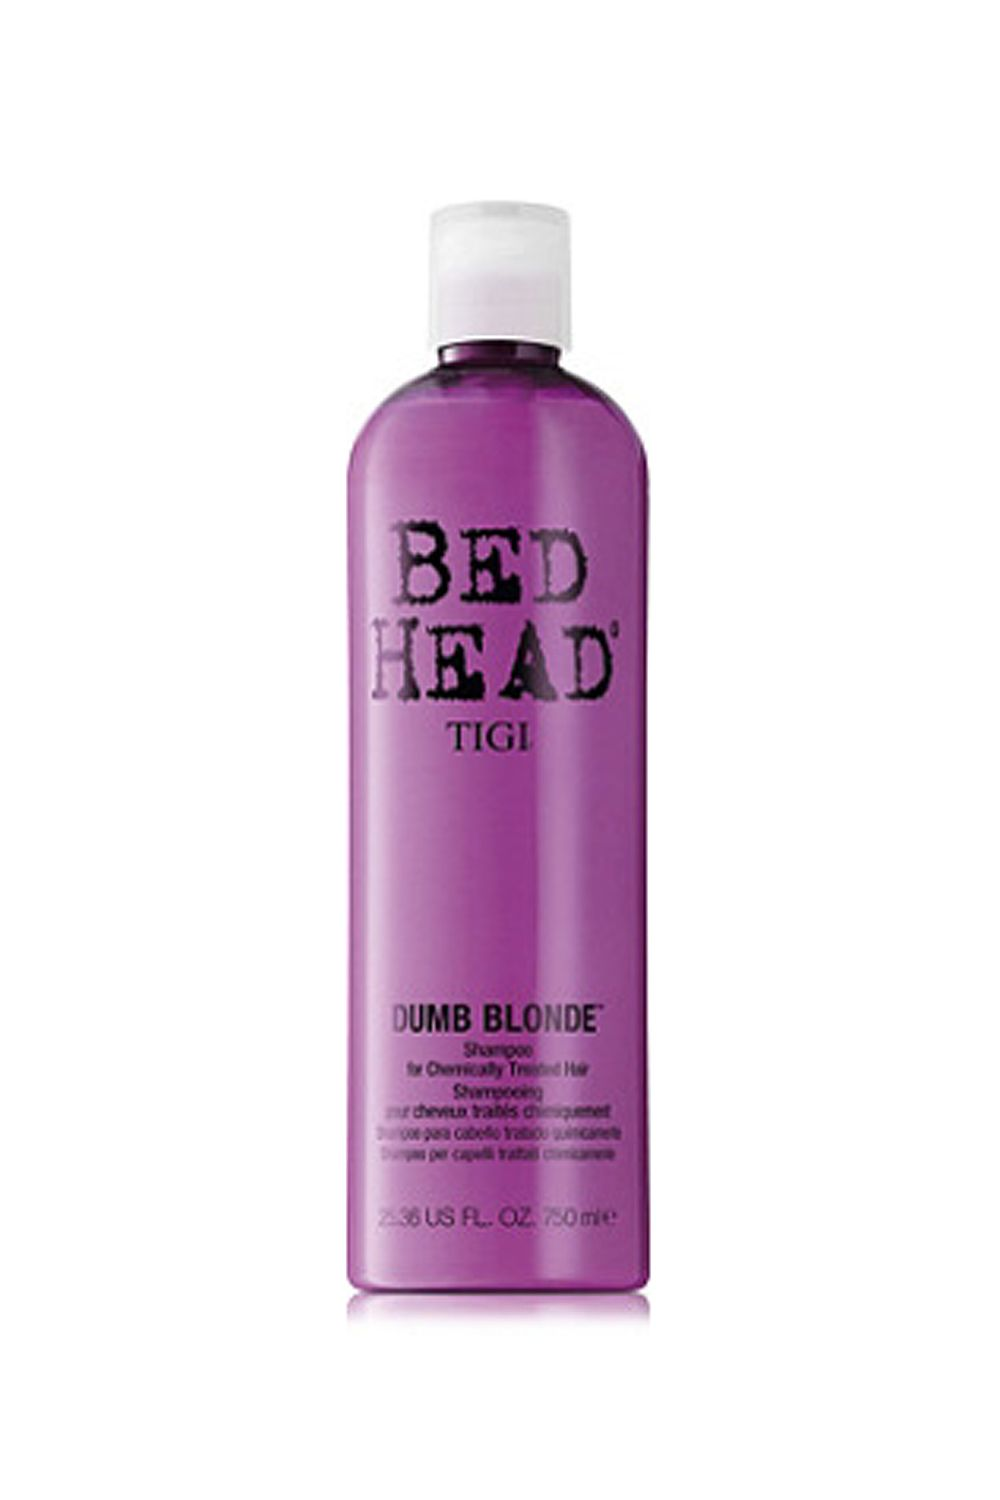 """<p>Vibrancy and softness in one. What else even is there?</p><p>TIGI Bed Head Dumb Blonde Shampoo, $29, <a href=""""http://www.ulta.com/bed-head-dumb-blonde-shampoo?productId=xlsImpprod5870152"""" target=""""_blank"""" data-tracking-id=""""recirc-text-link"""">ulta.com</a>.</p>"""